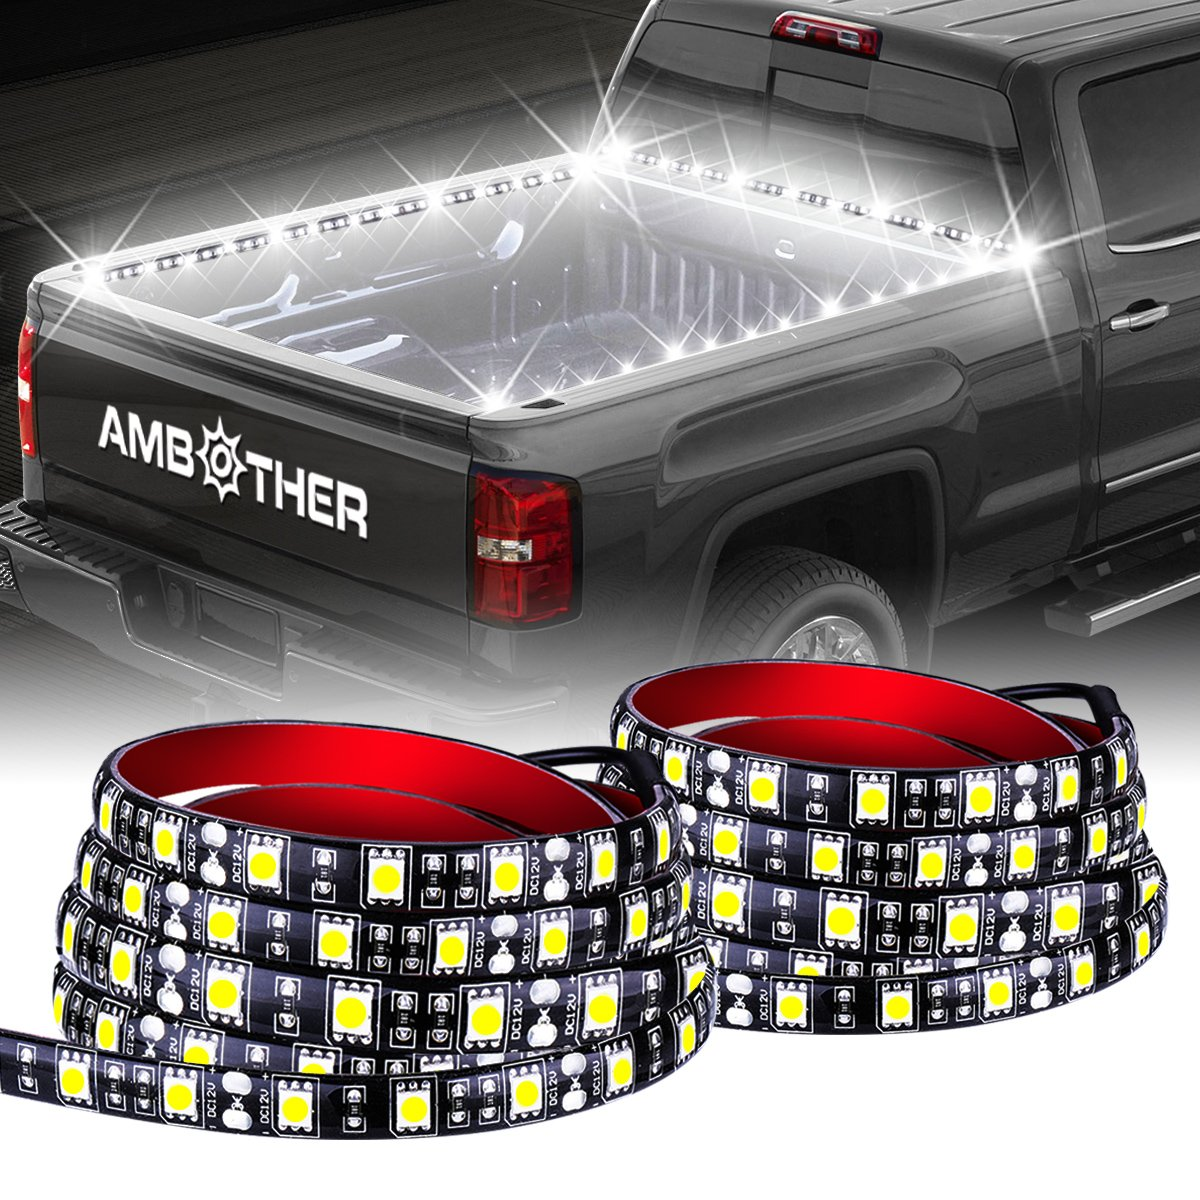 "AMBOTHER 2PCS 60""Cargo Truck Bed Lights Strip Flexible Light bar White LED light for Truck Boat Pickup RV SUV,With On-Off Switch Fuse 2-Way Splitter Cable,No-Drill,1 Year Warranty by AMBOTHER"